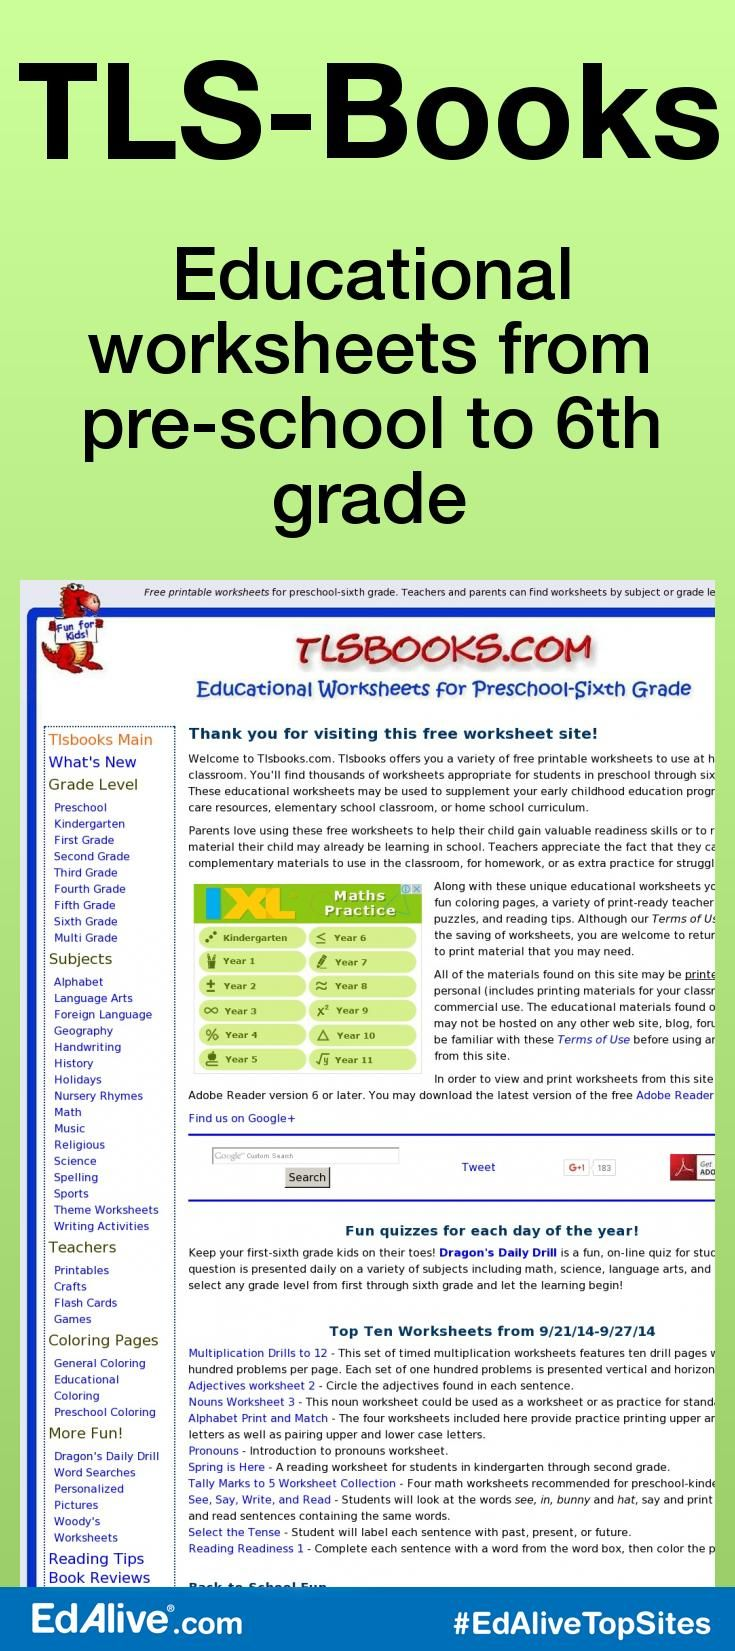 TLS-Books | Free printable worksheets, Printable worksheets and Pre ...